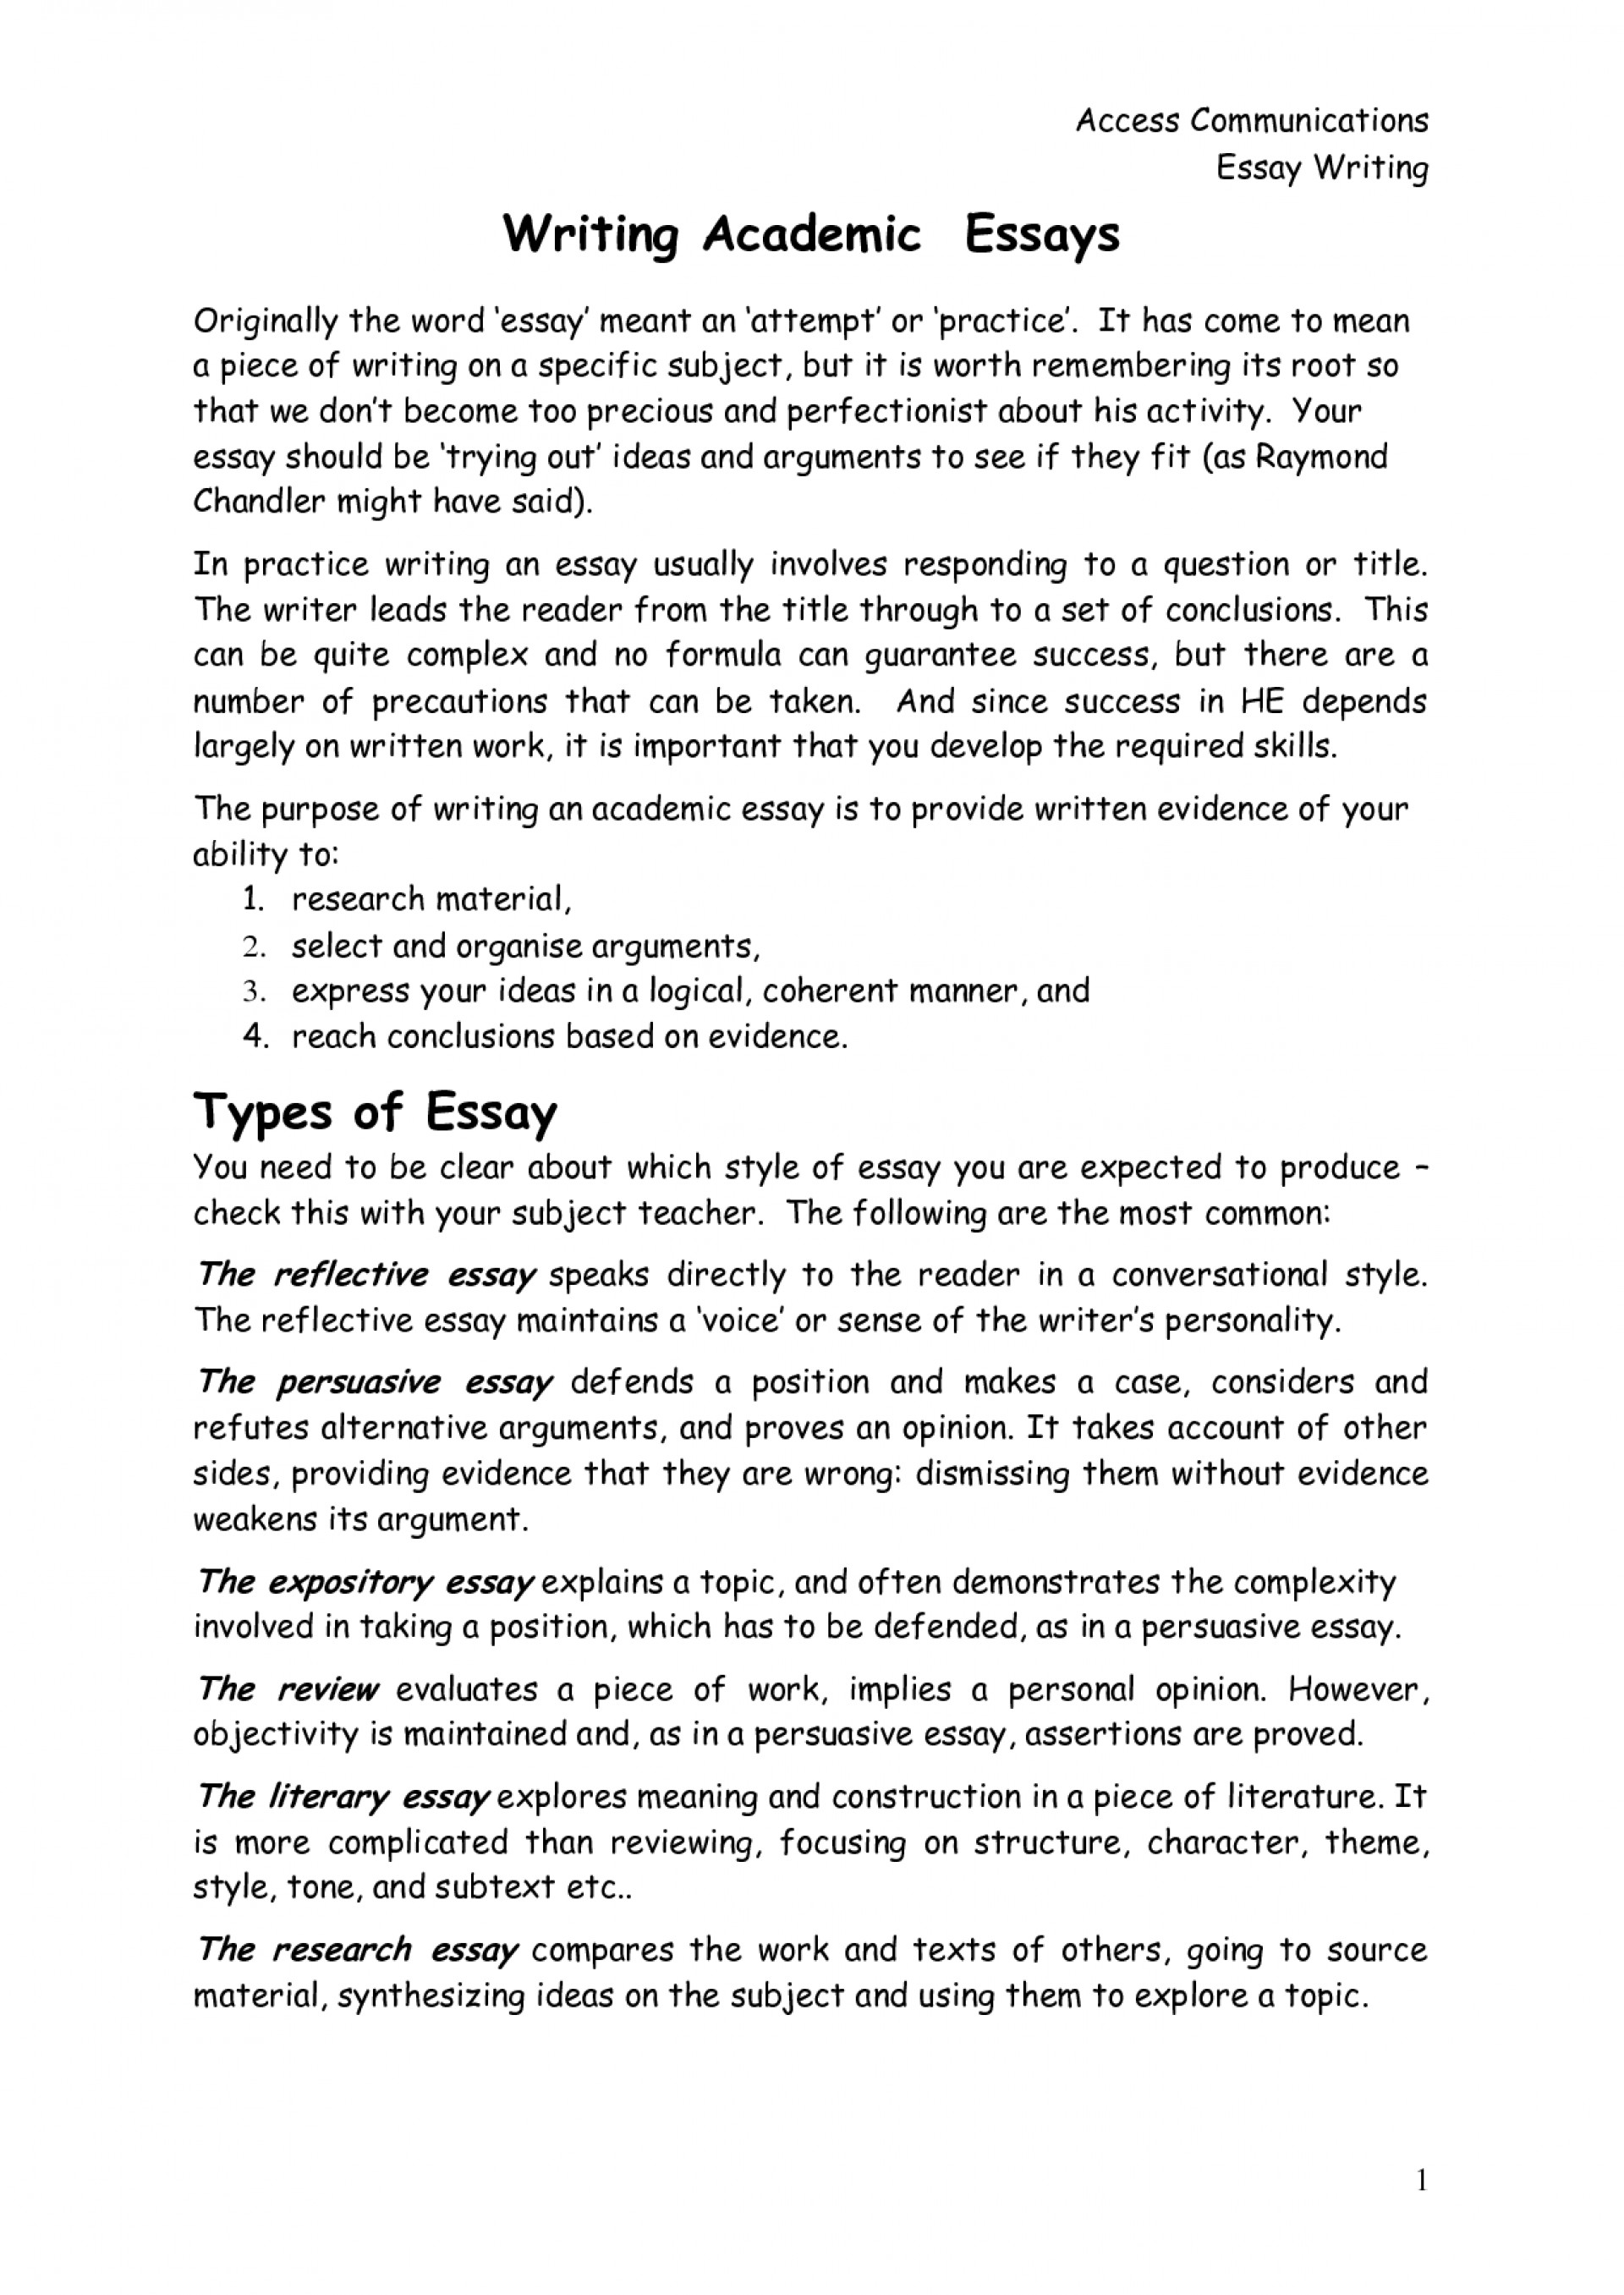 017 Essay Example How To Start Reflective Surprising A Introduction Do You An Write For 1920